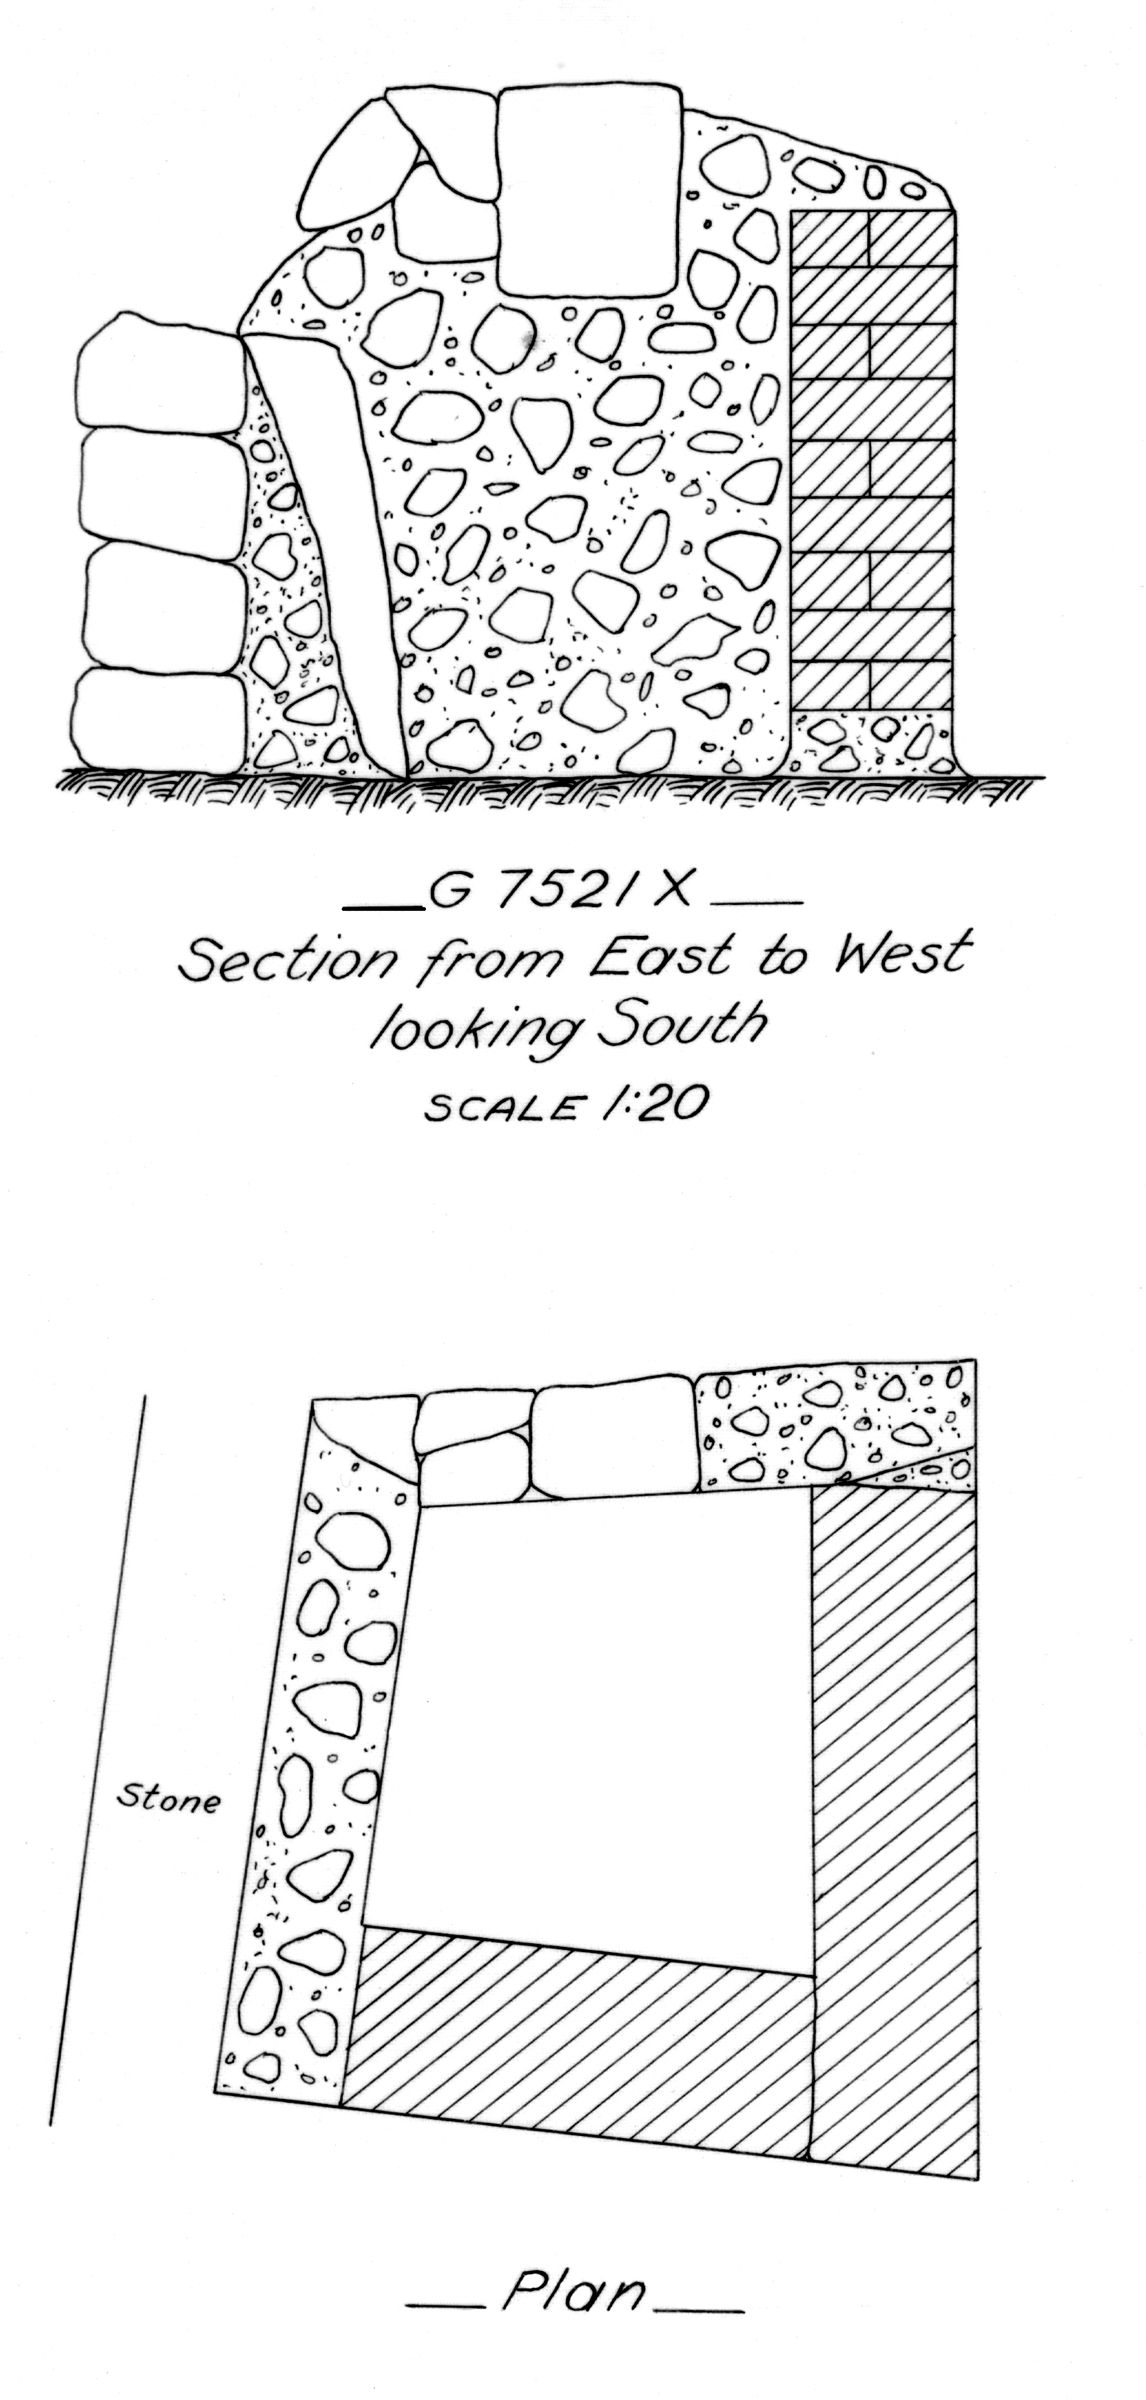 Maps and plans: G 7521, Shaft X